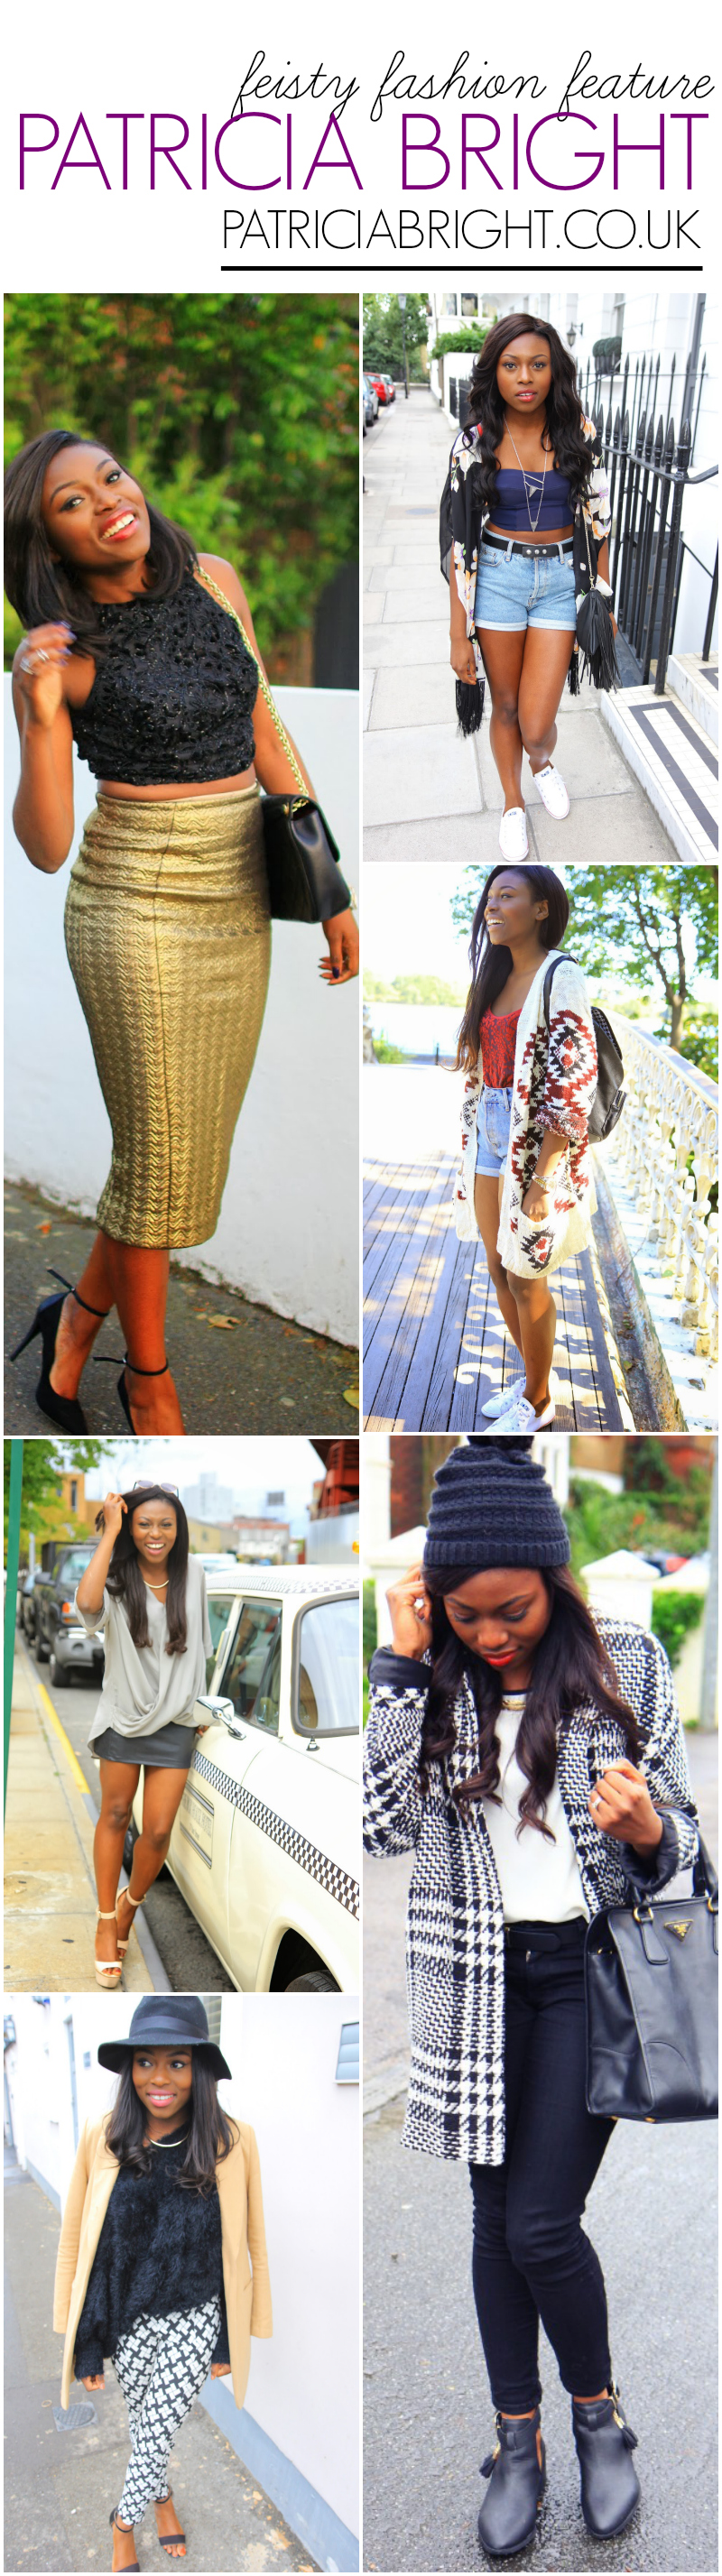 feisty fashion feature - black style blogger - black fashion blogger - Patricia Bright featured on The Feisty House